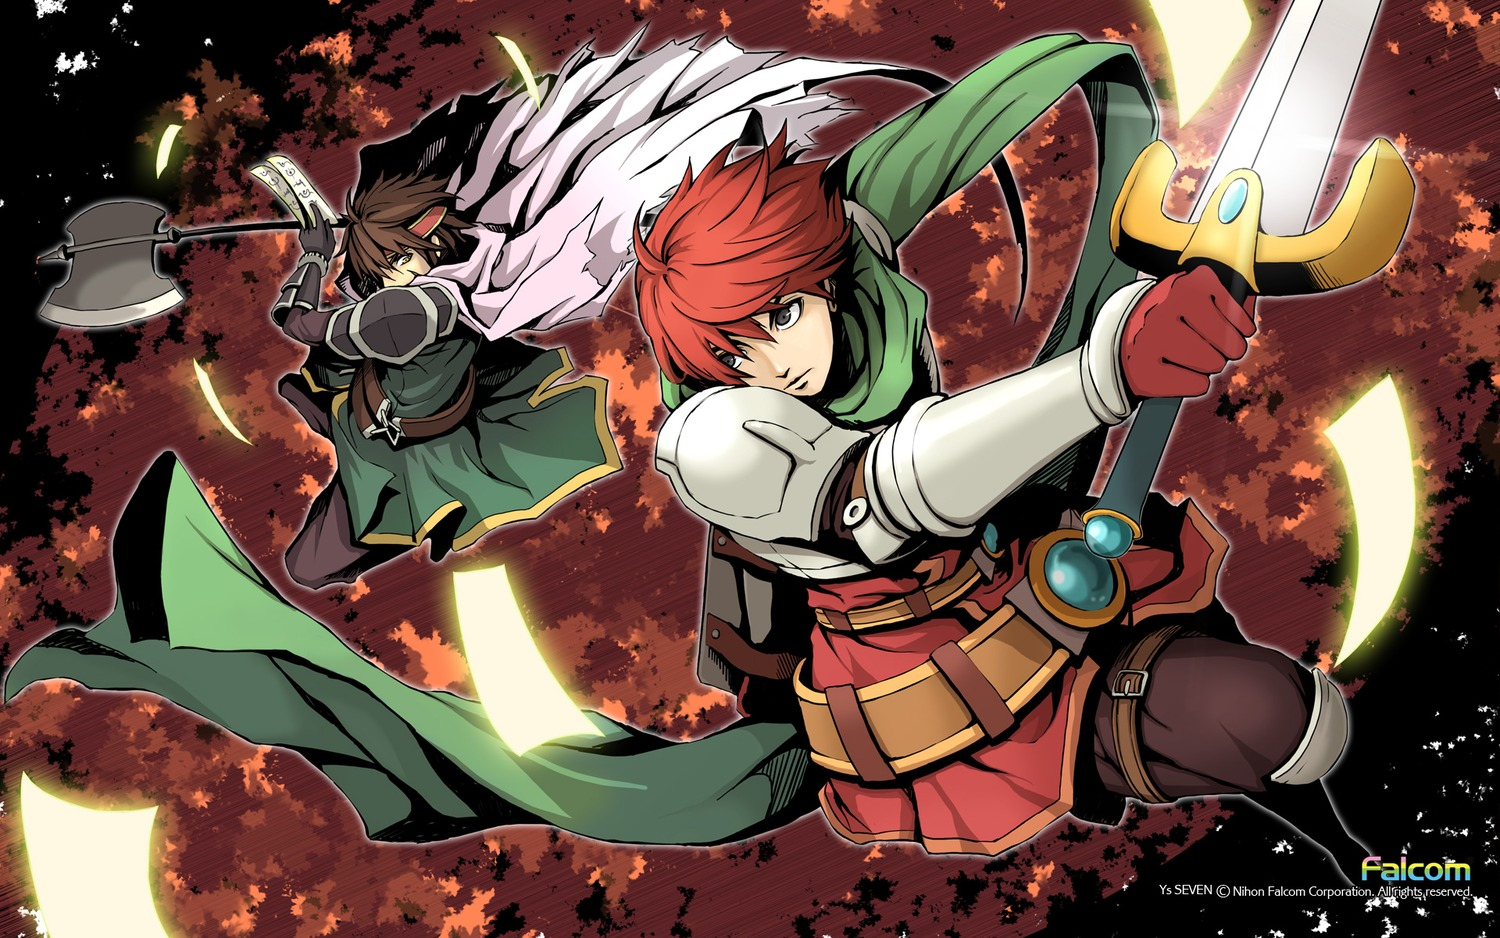 Its time to scream Ys as Nihon Falcolm confirms brand new Ys game screenshot